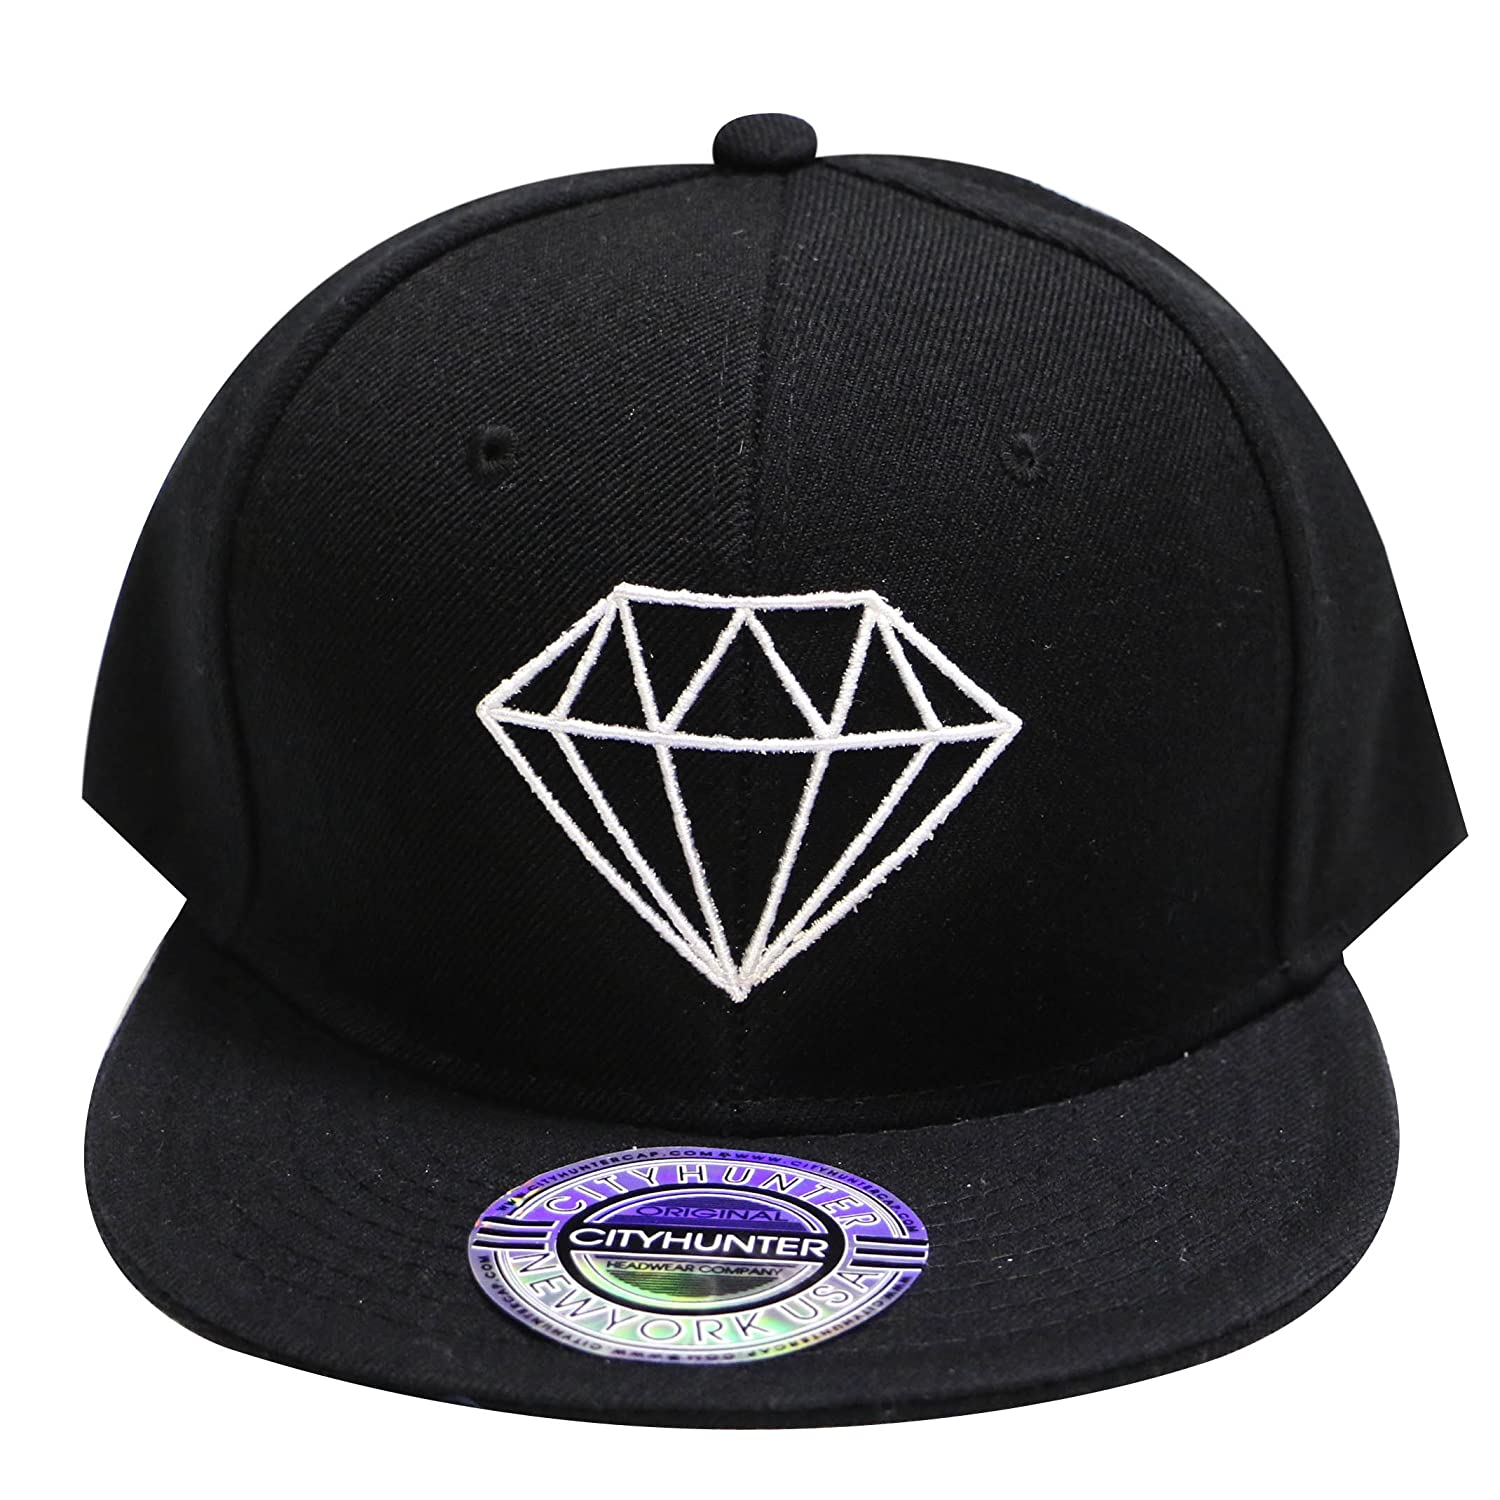 City Hunter Cf918t Acrylic Diamond Snapback Caps Multi Colors (Black) at Amazon  Men s Clothing store  e9249f2ce08b